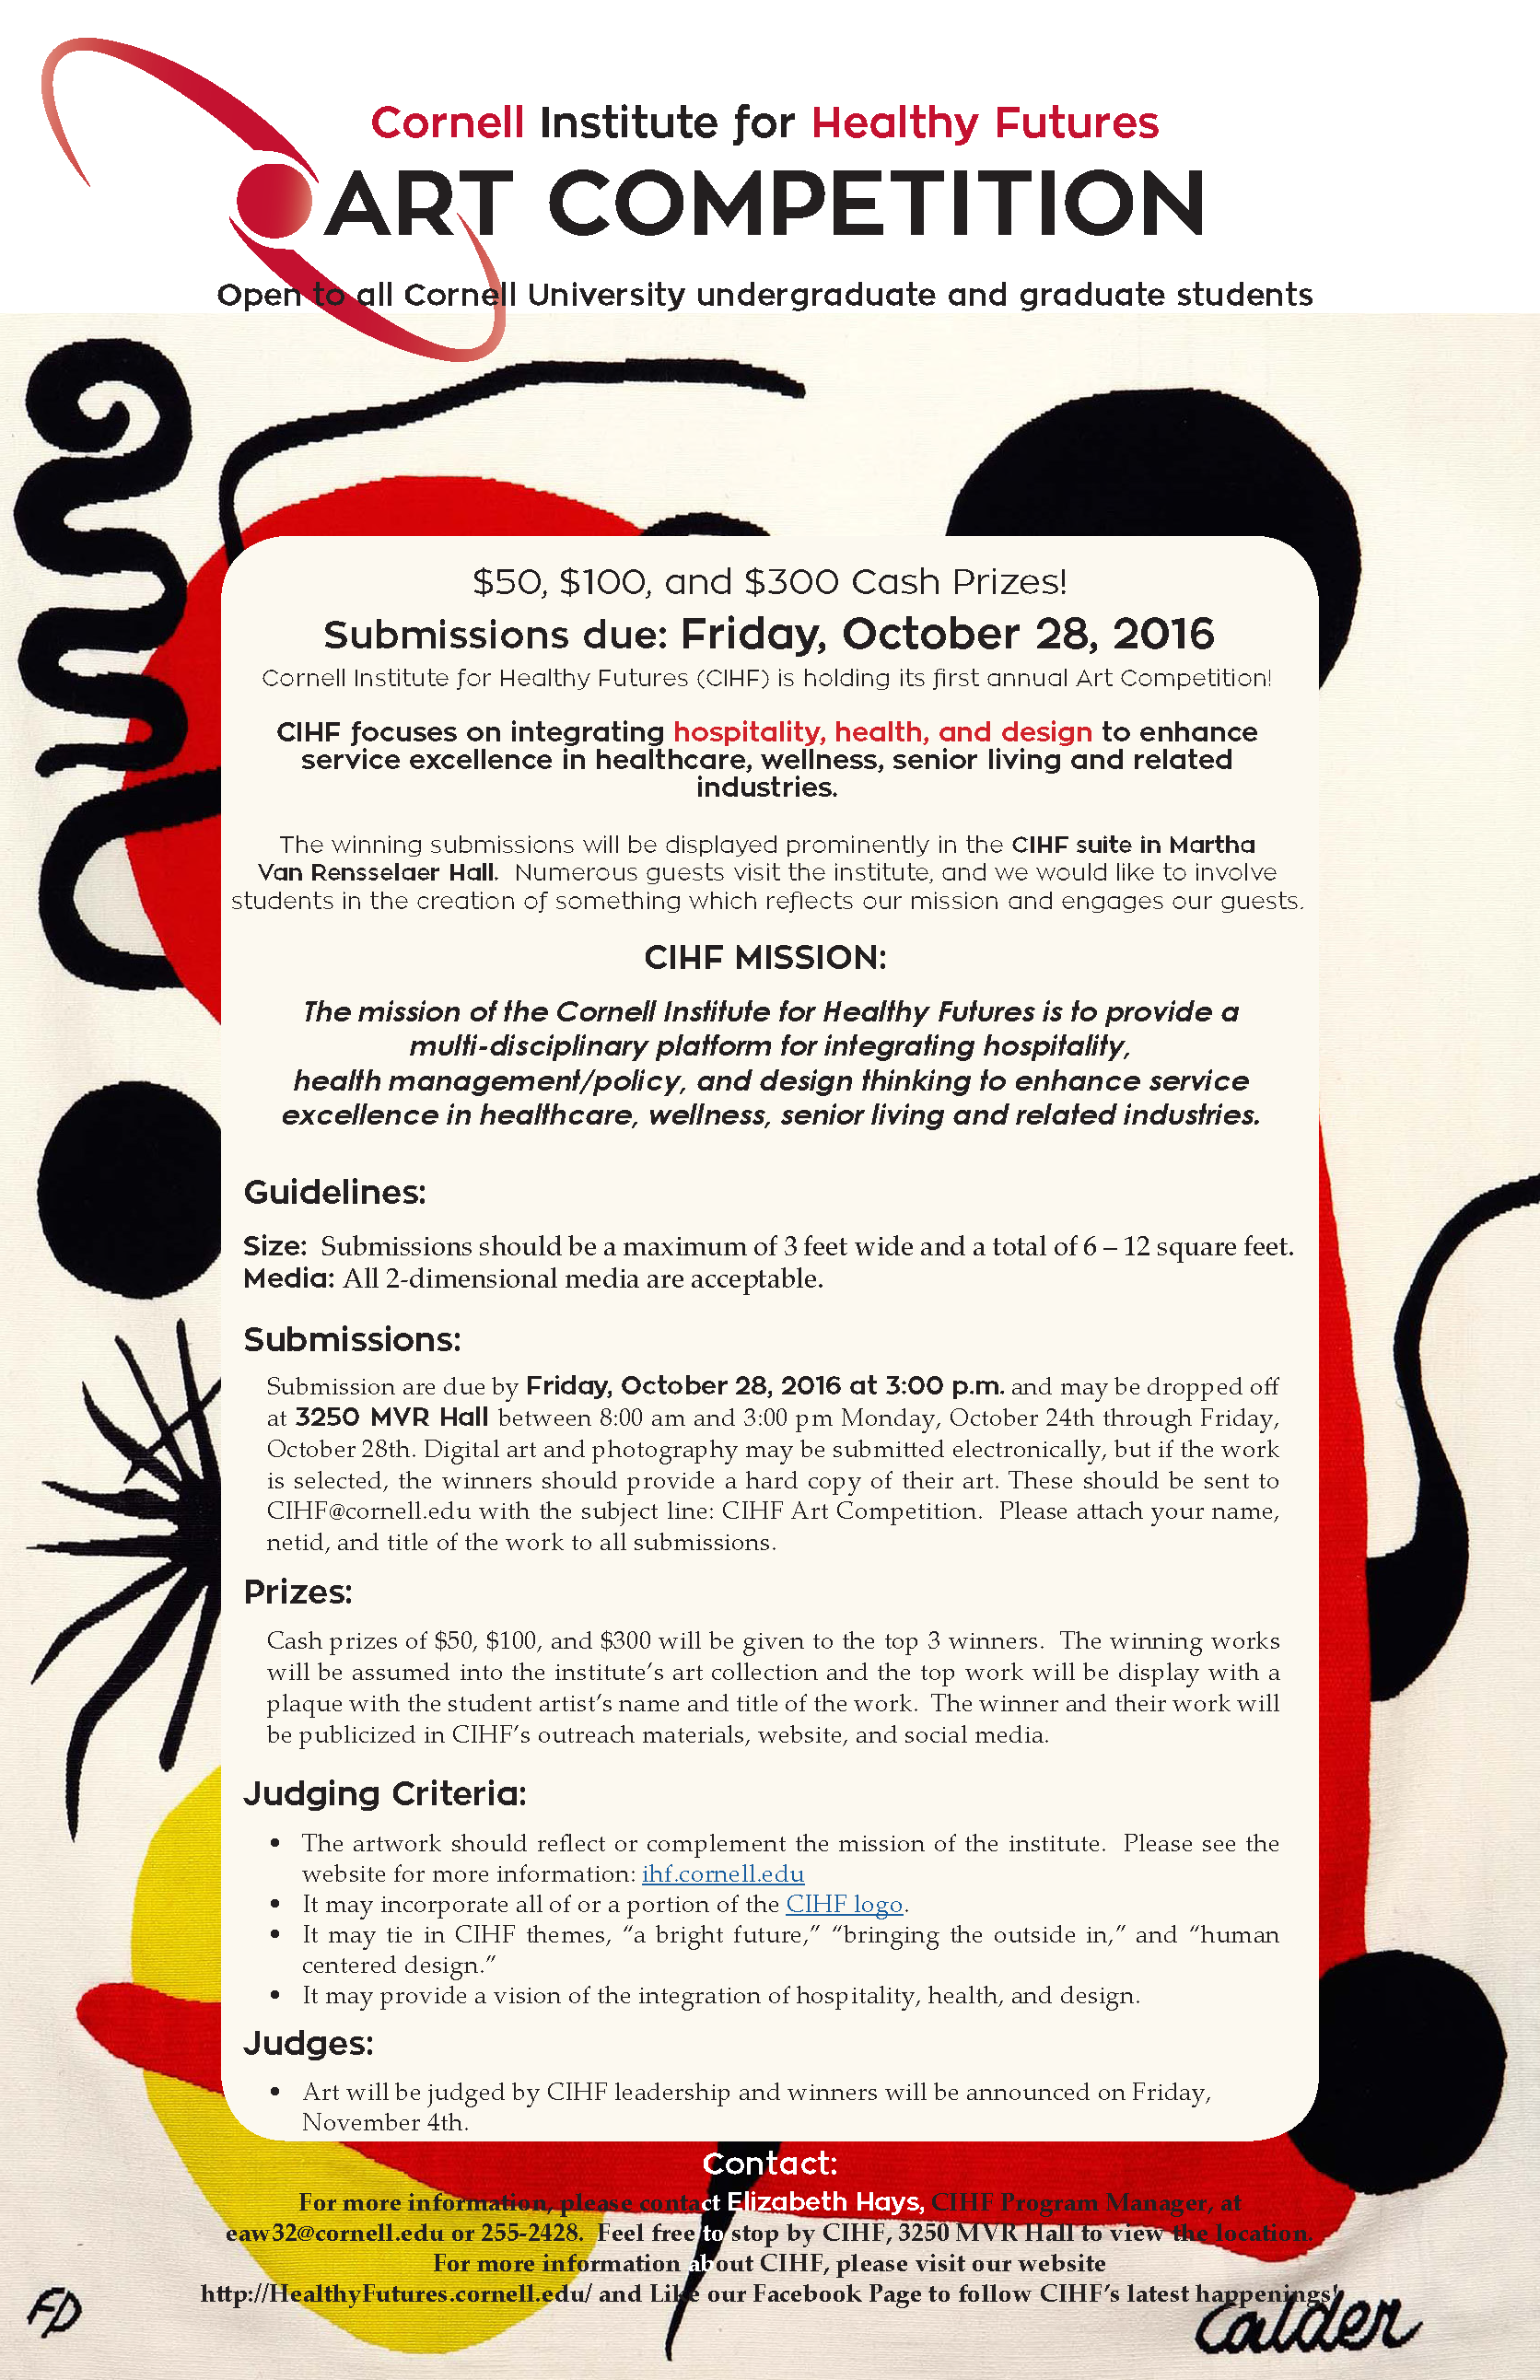 CIHF Art Competition Instructions